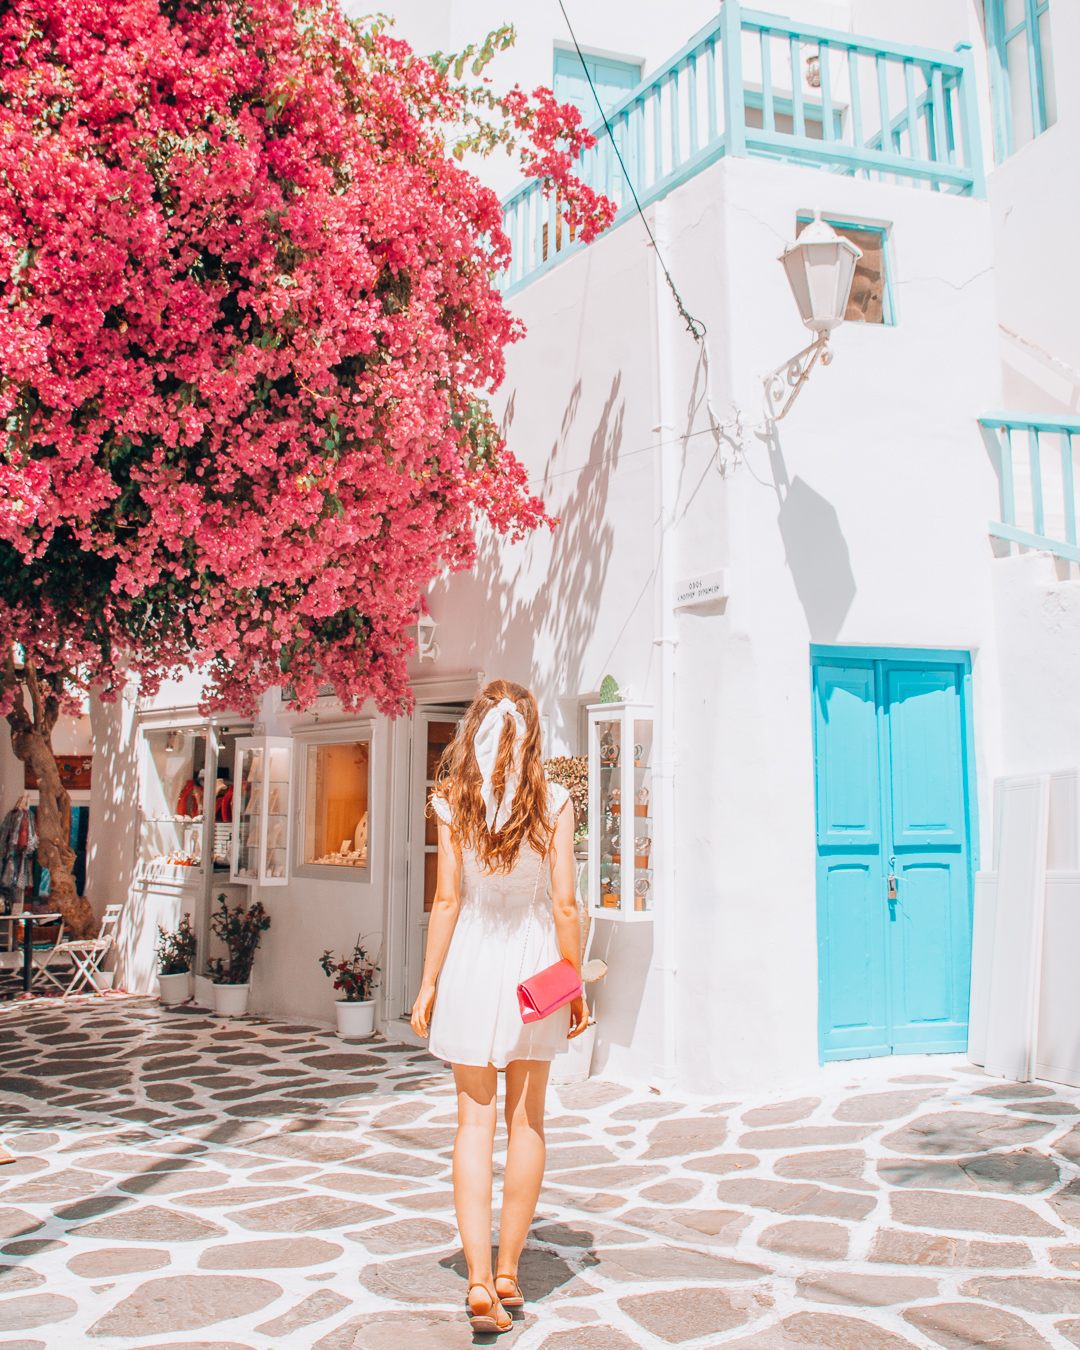 Girl with a white dress and a pink bag looking at a building and a pink tree in Mykonos